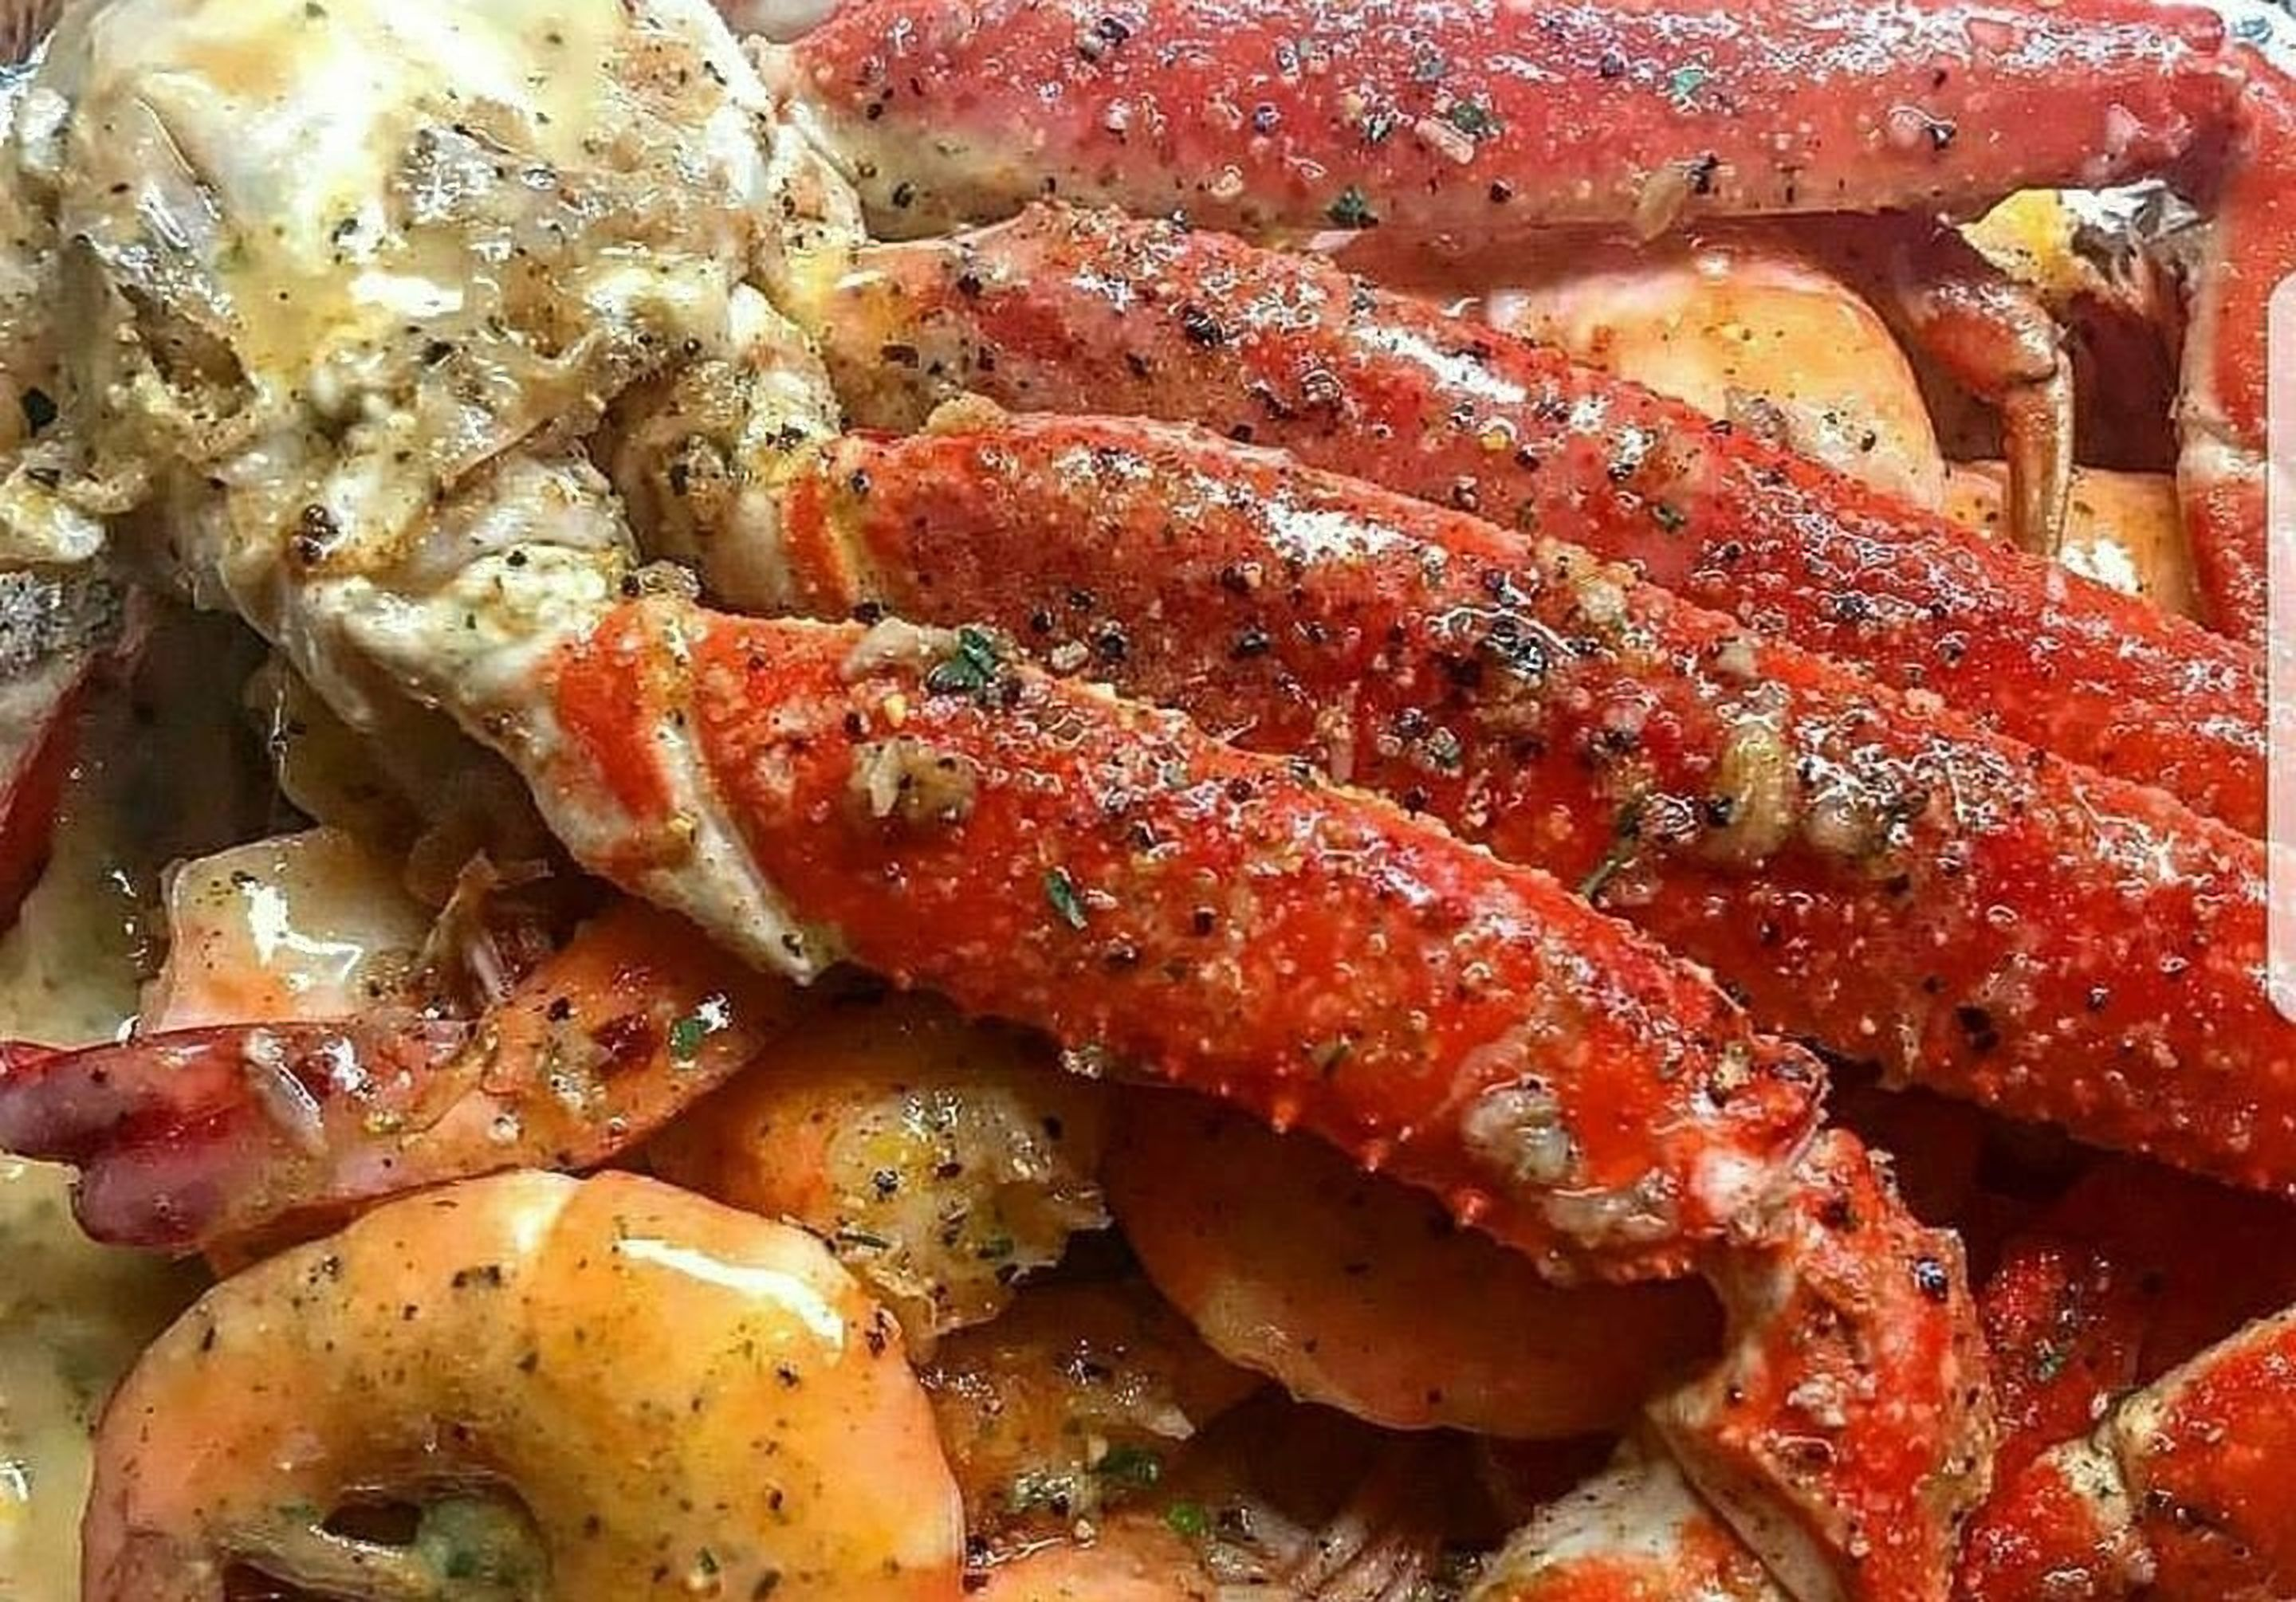 King Crab Legs And Shrimp A In Spicy Butter Wine Sauce For This Recipe Please Go To Ht Crab Legs Recipe Crab Leg Recipes Boiled Snow Crab Legs Recipe Boiled